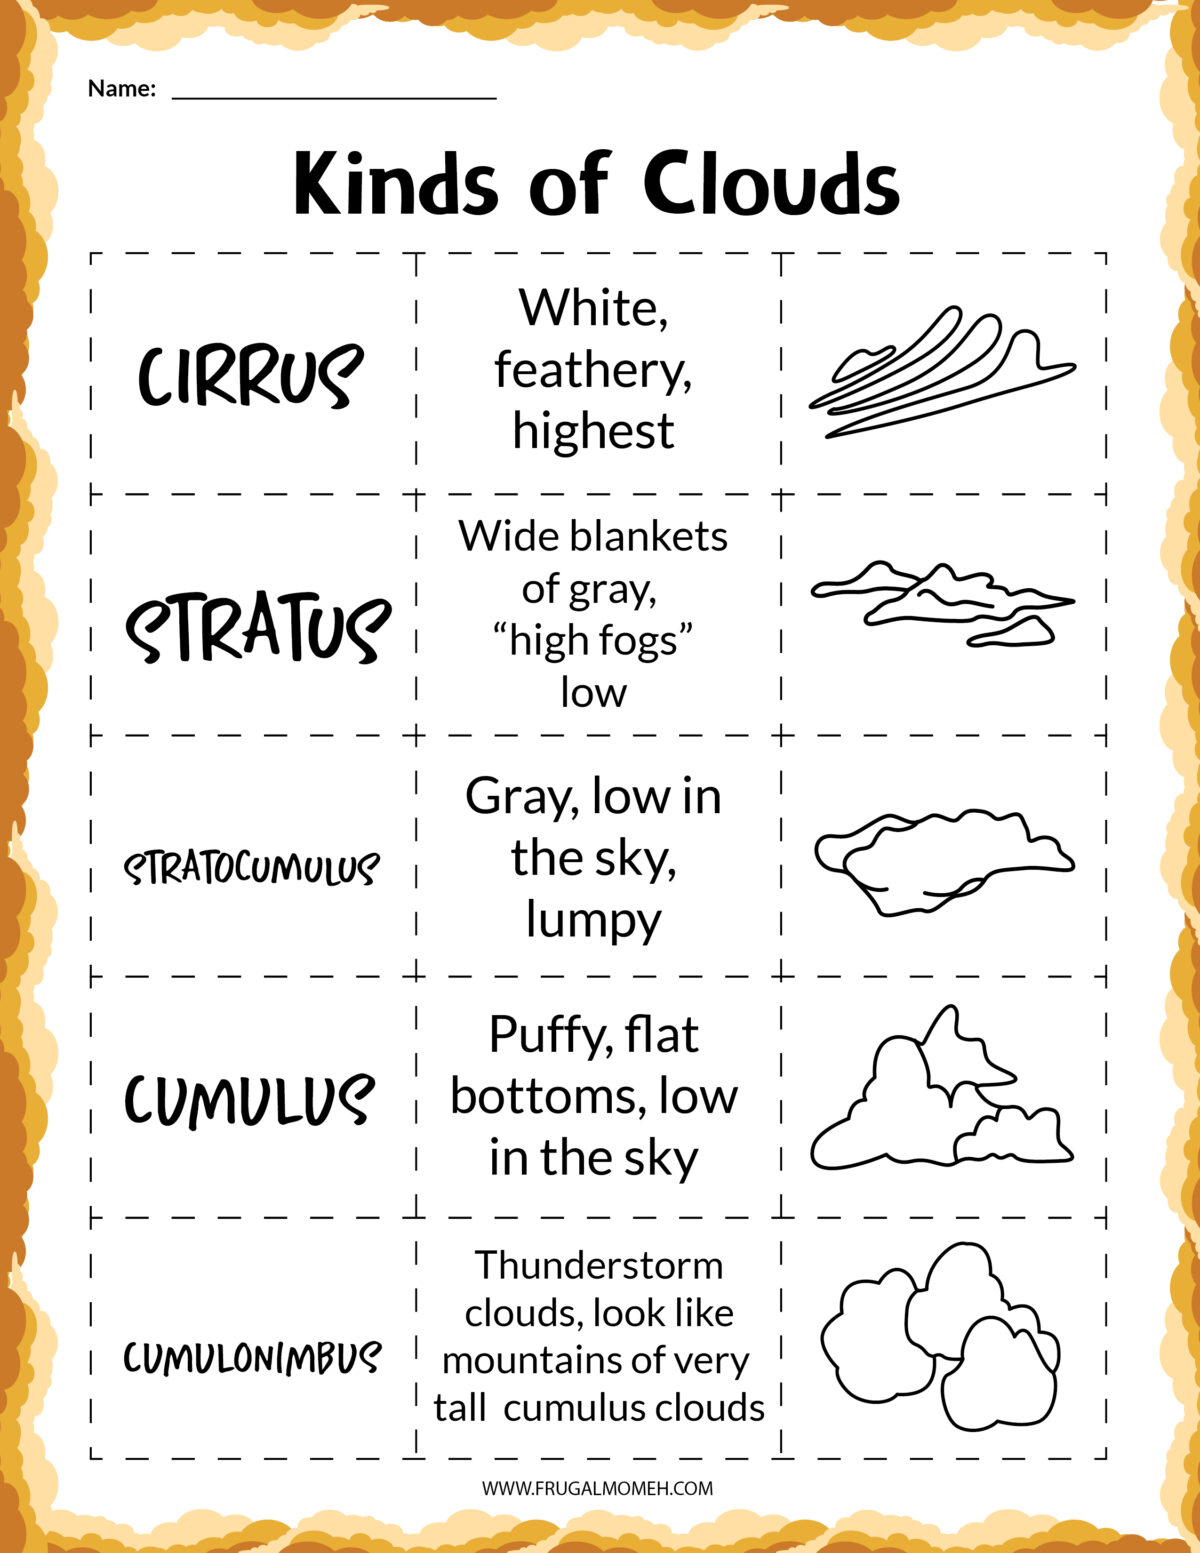 Kinds of clouds printable sheet.